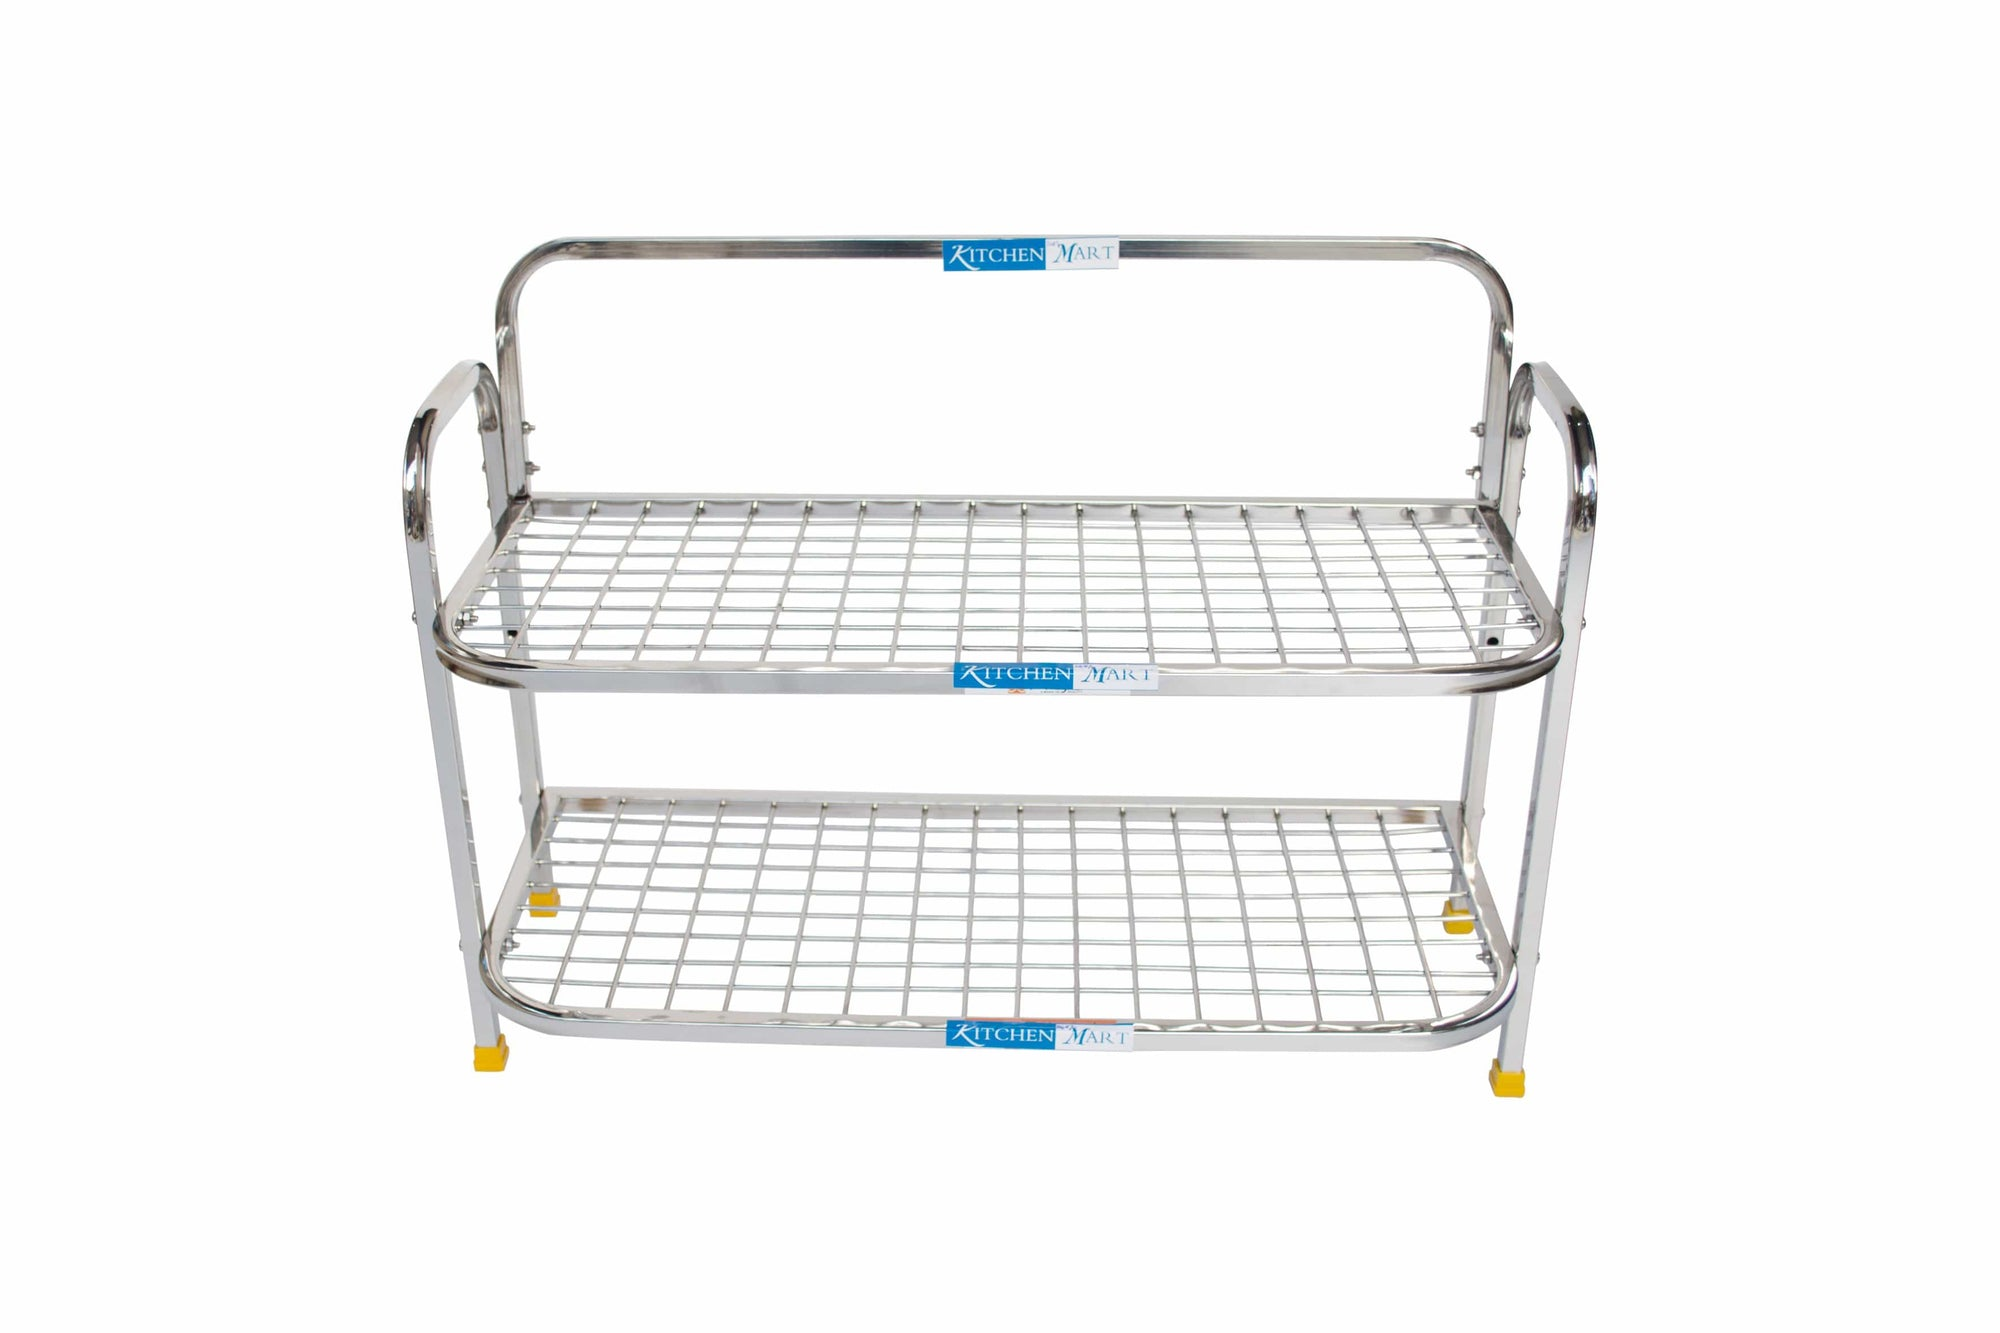 Kitchen Mart Stainless Steel shoe rack / Kitchen Storage shelf rack (18 x 2) - KITCHEN MART